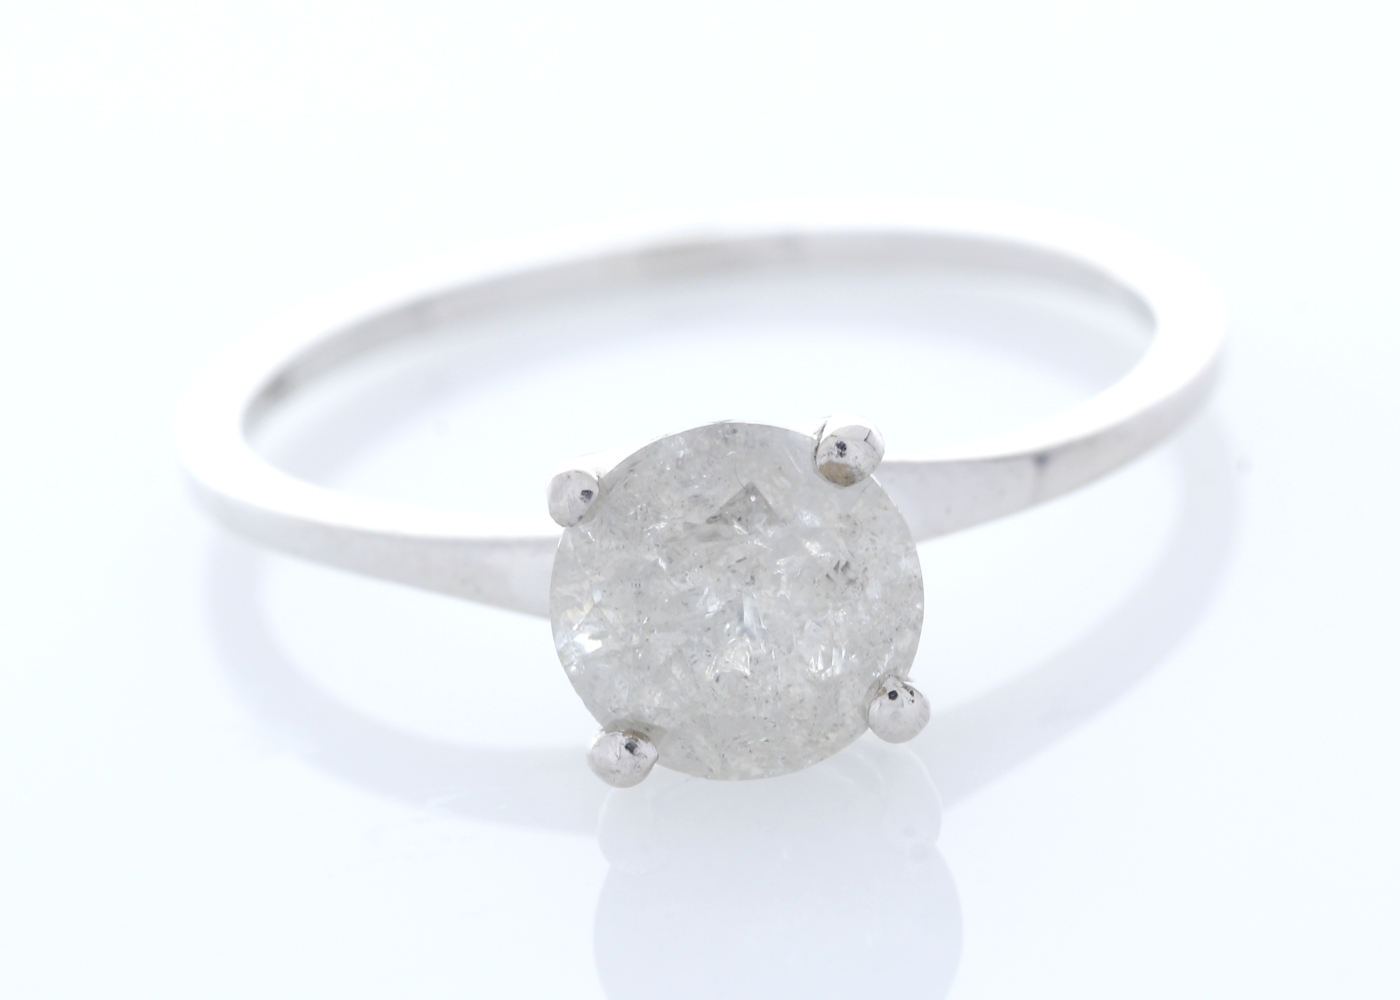 18k White Gold Wire Set Diamond Ring 1.05 Carats - Image 3 of 4